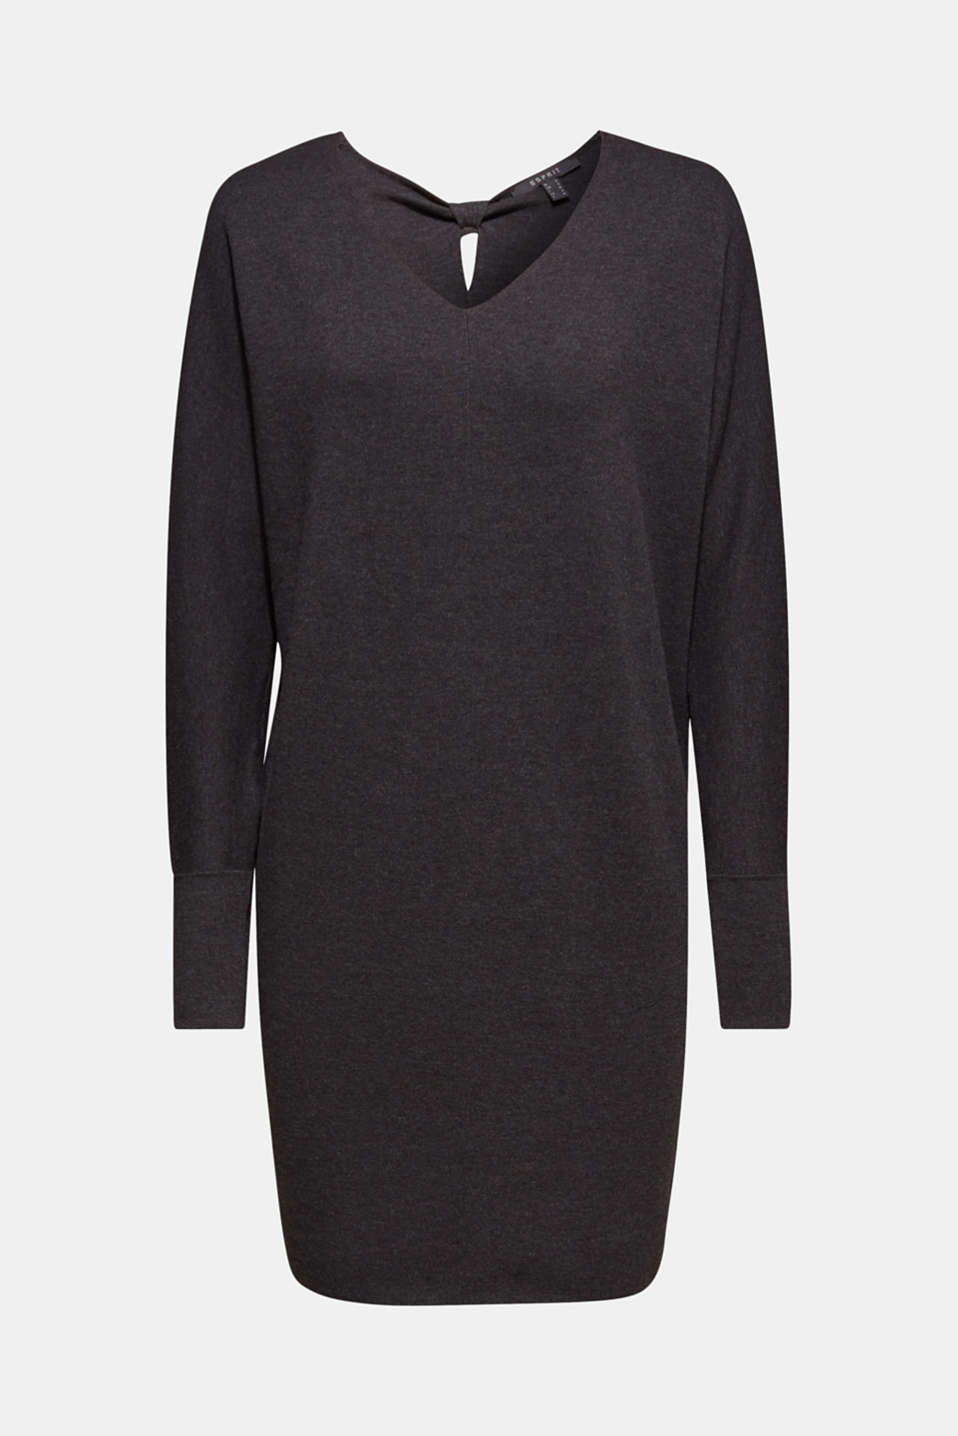 Knit dress with a bow, stretch cotton, DARK GREY 5, detail image number 6